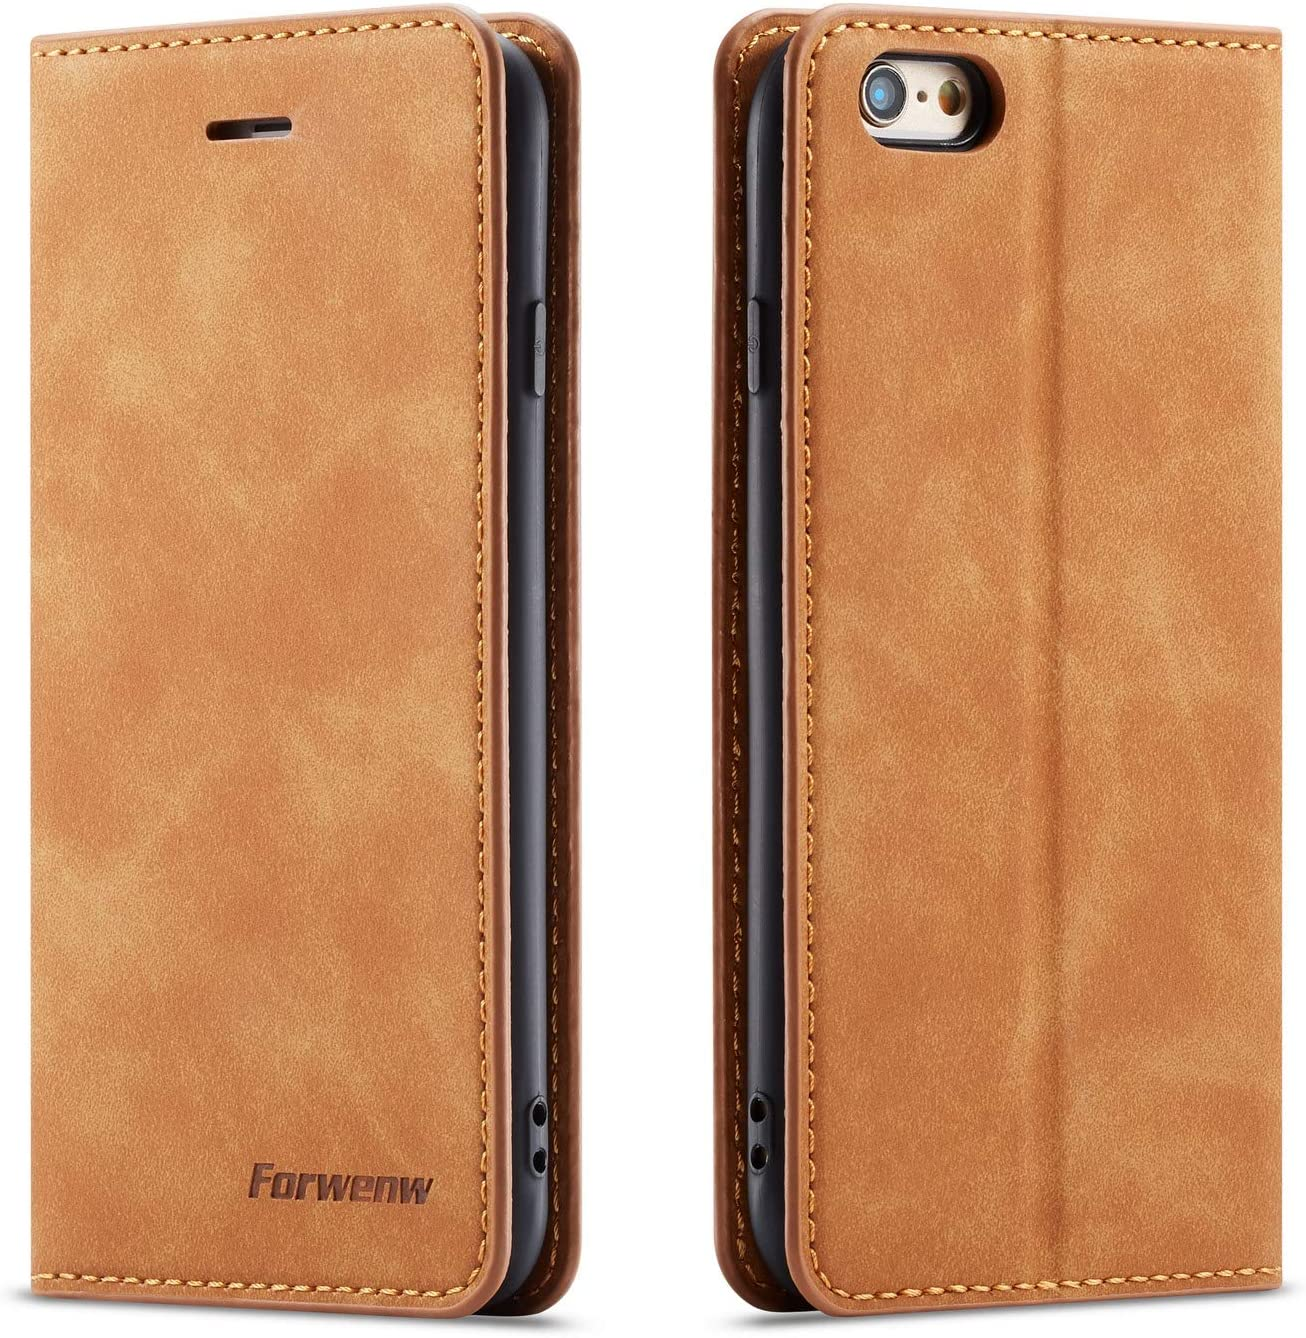 QLTYPRI iPhone 6 iPhone 6S Case, Premium PU Leather Cover TPU Bumper with Card Holder Kickstand Hidden Magnetic Adsorption Shockproof Flip Wallet Case for iPhone 6 iPhone 6S - Brown